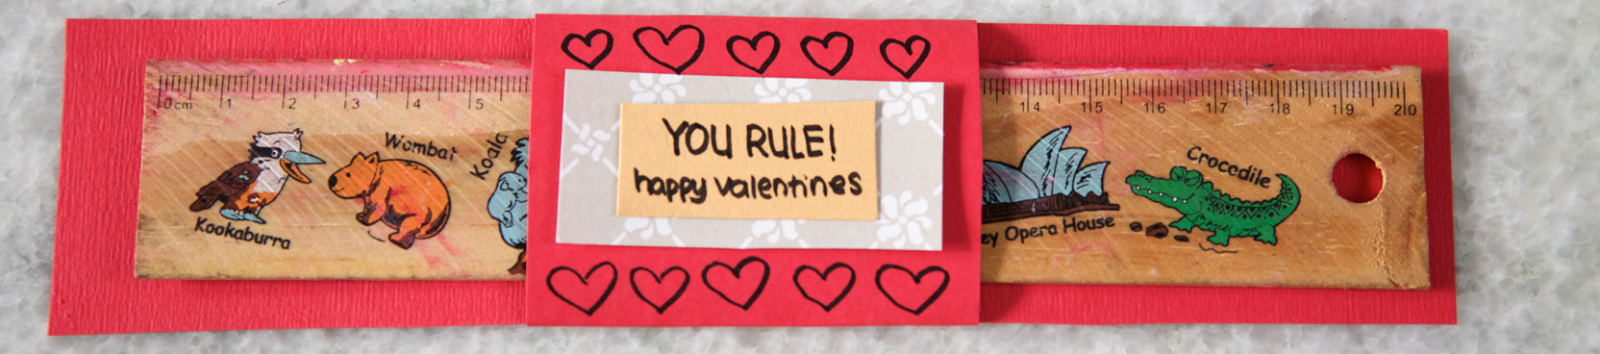 Four Funny Valentines Day Card Pickup-Lines